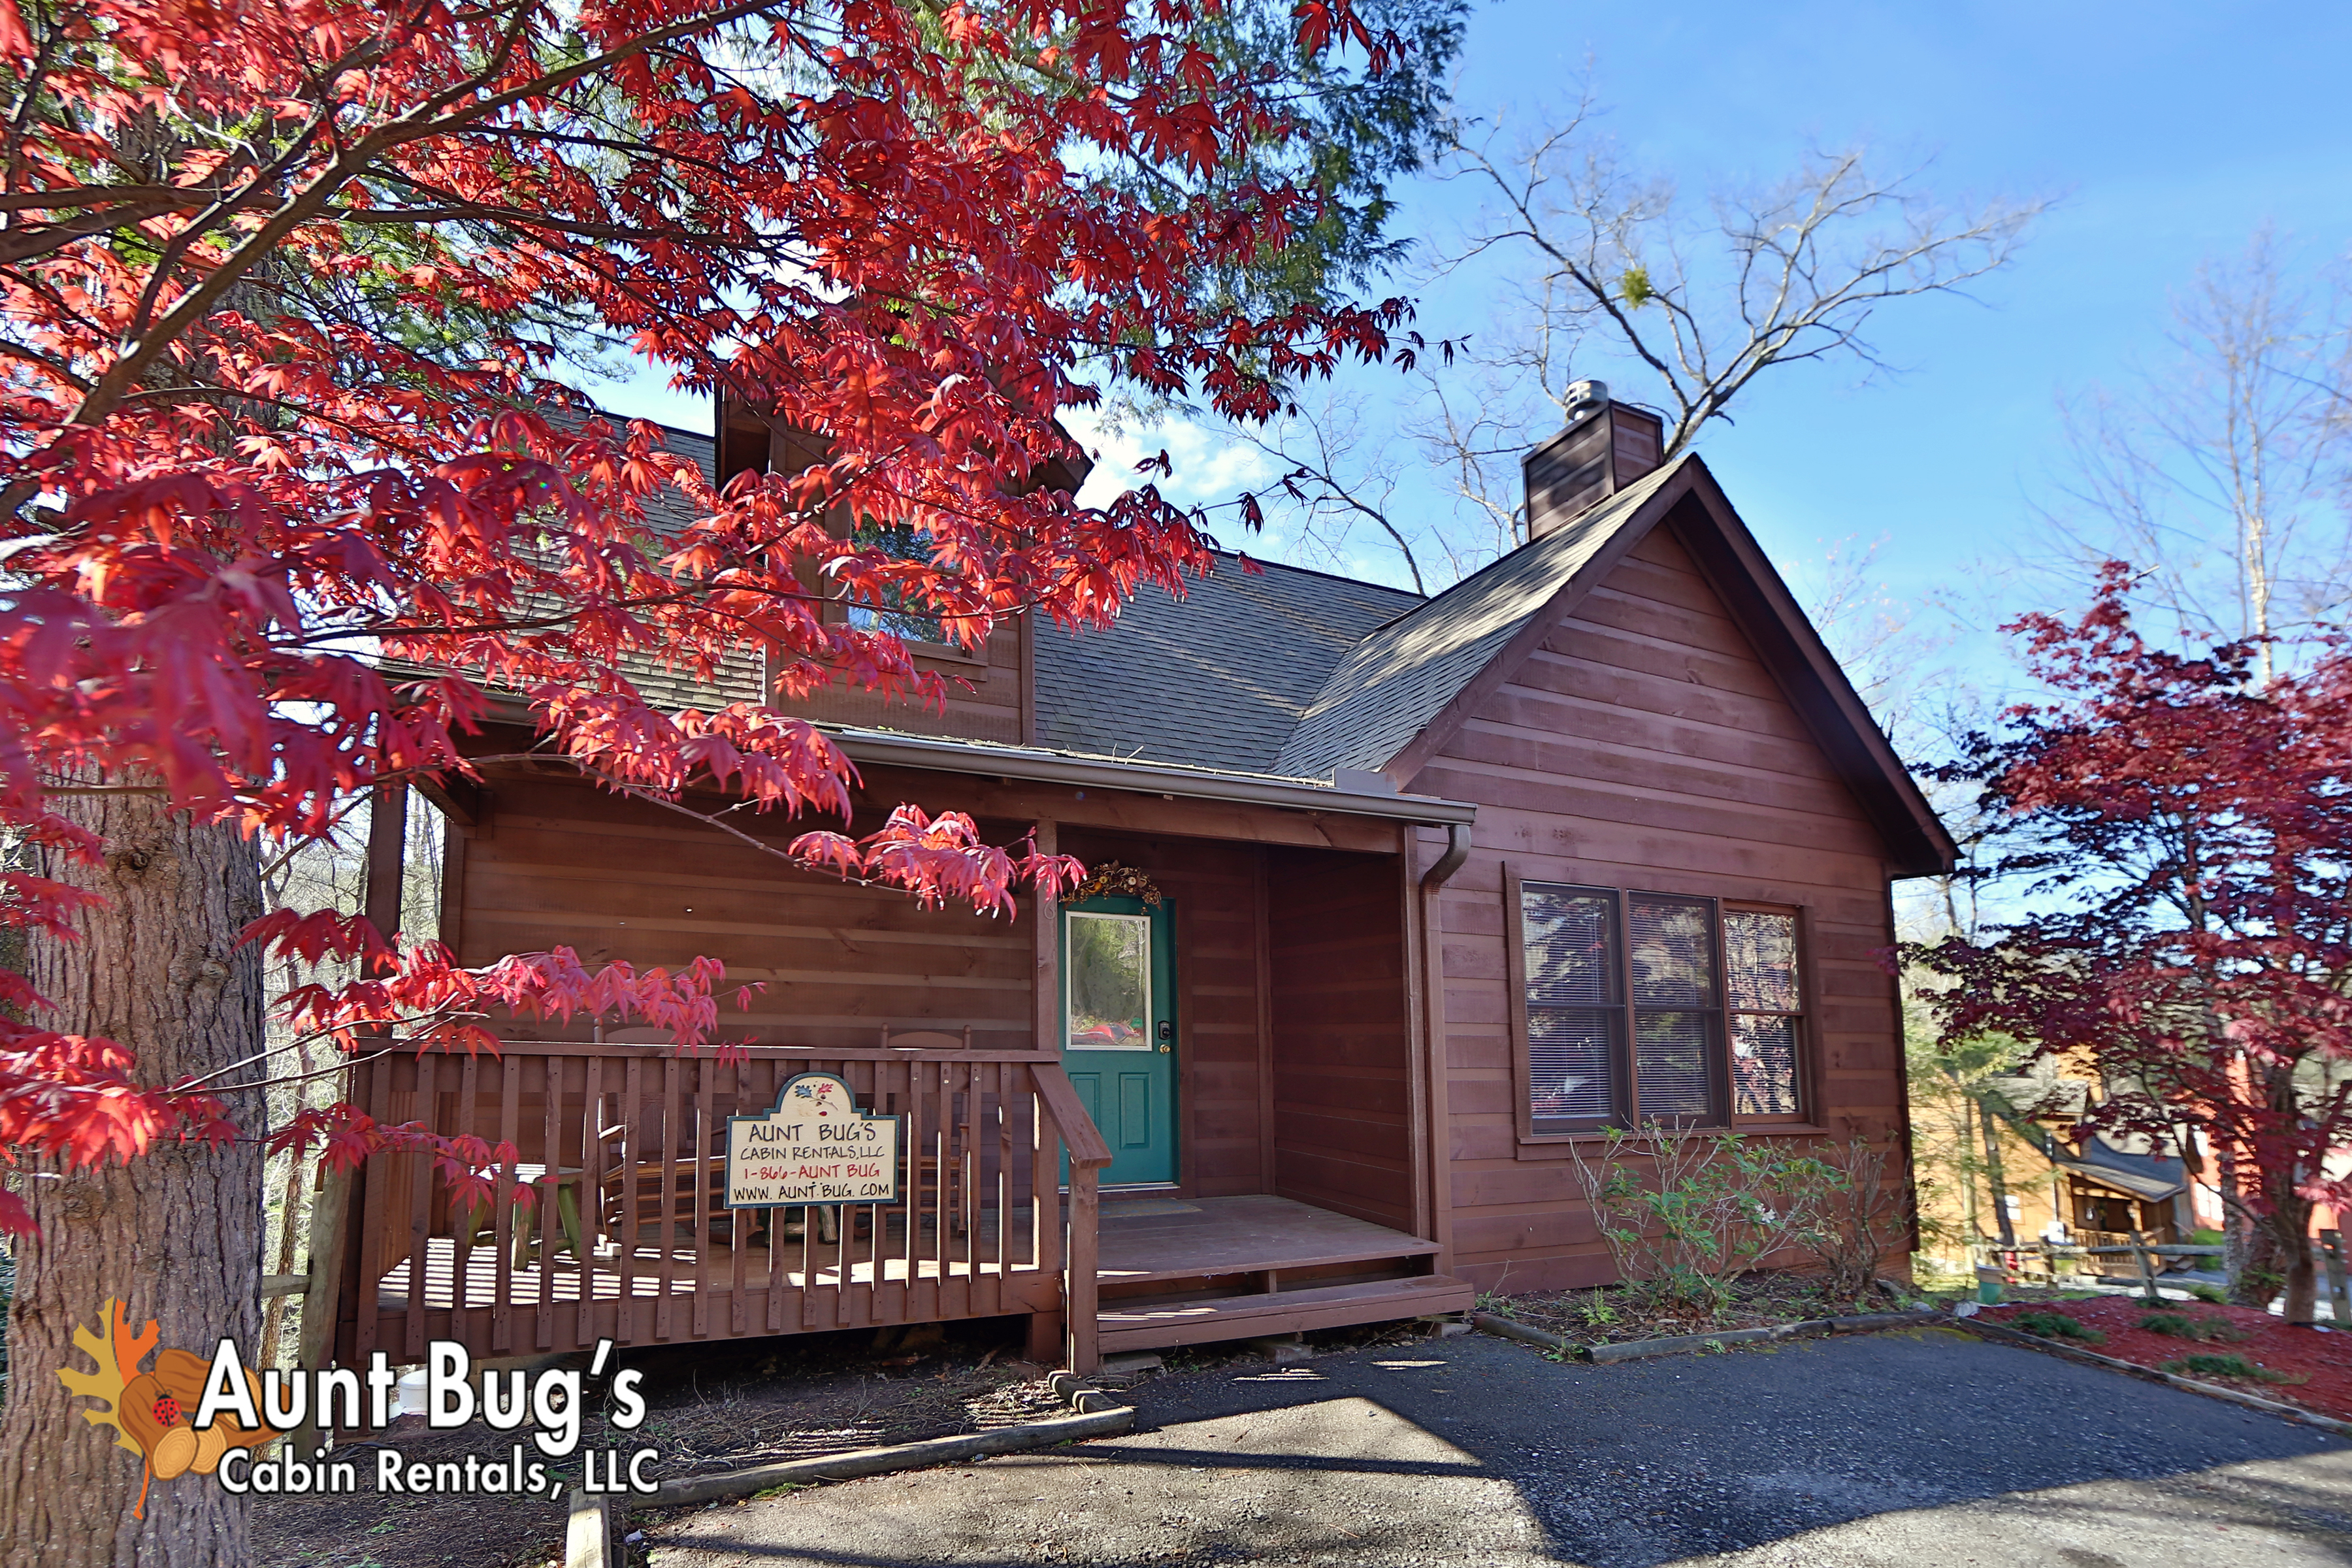 by own michigan rent forge owner rental cabin in to pigeon carolina cabins smoky gatlinburg mountains under tn north